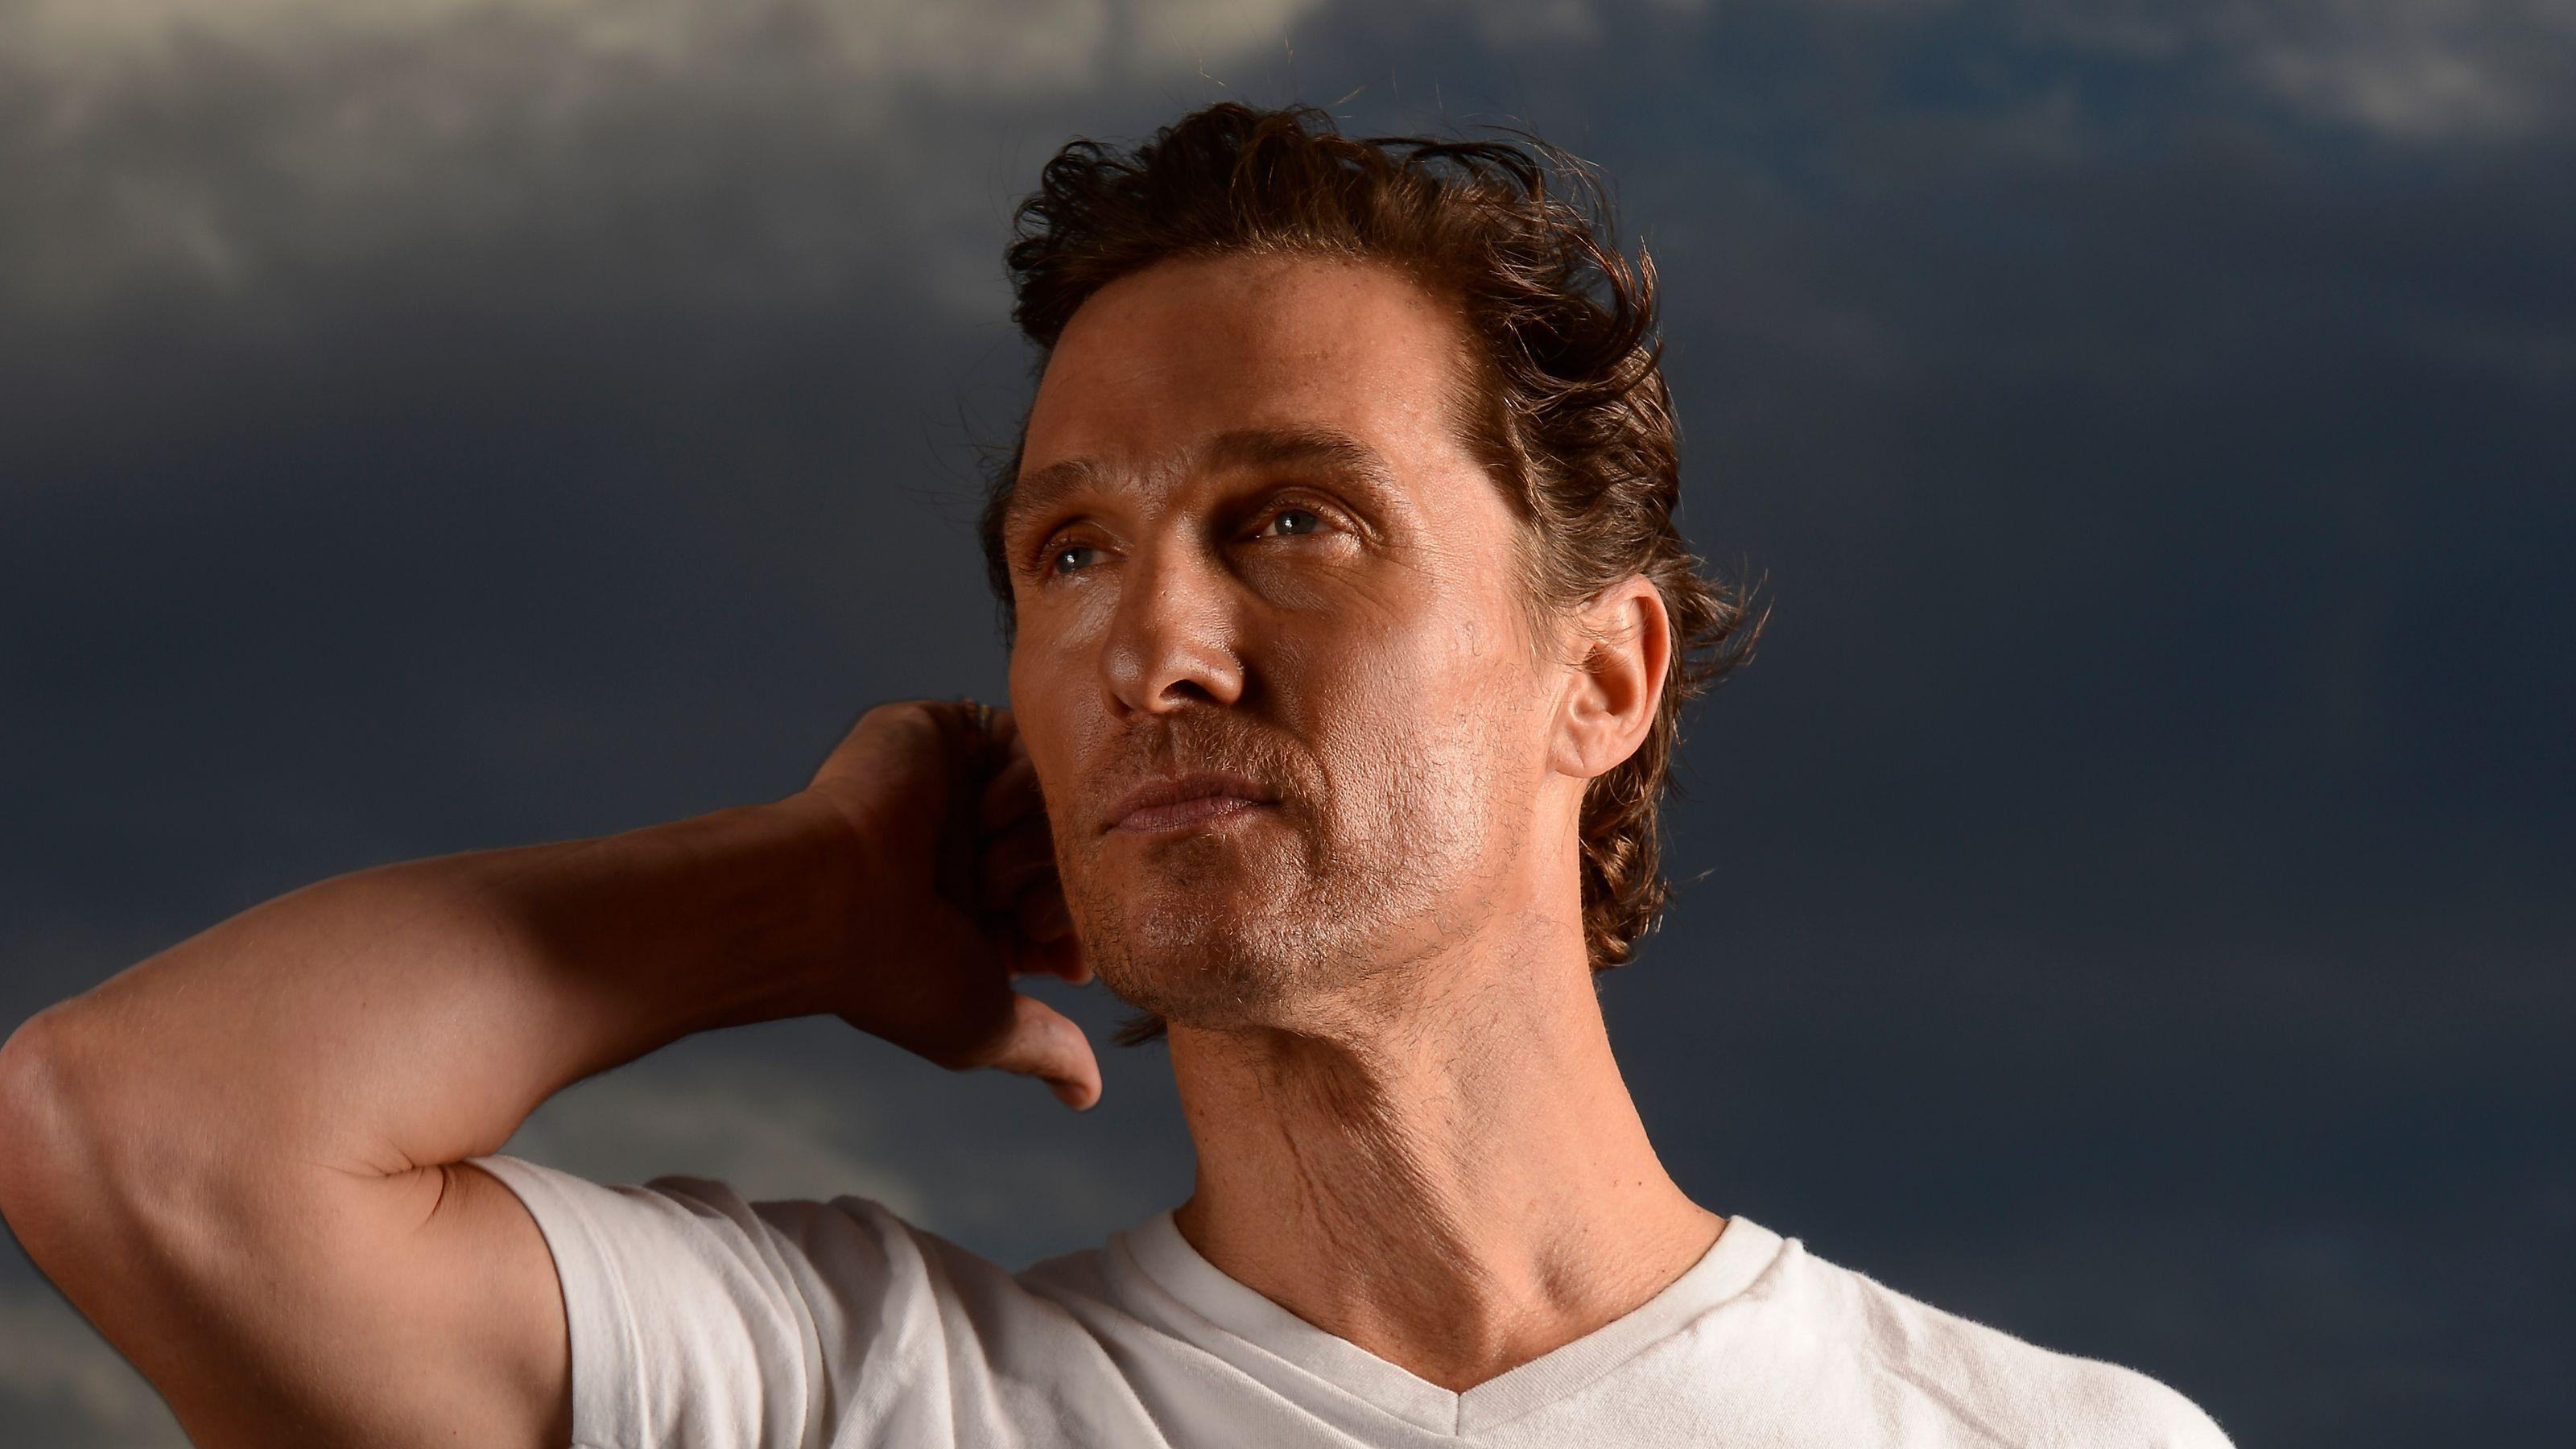 Matthew McConaughey Wallpapers Image Photos Pictures Backgrounds